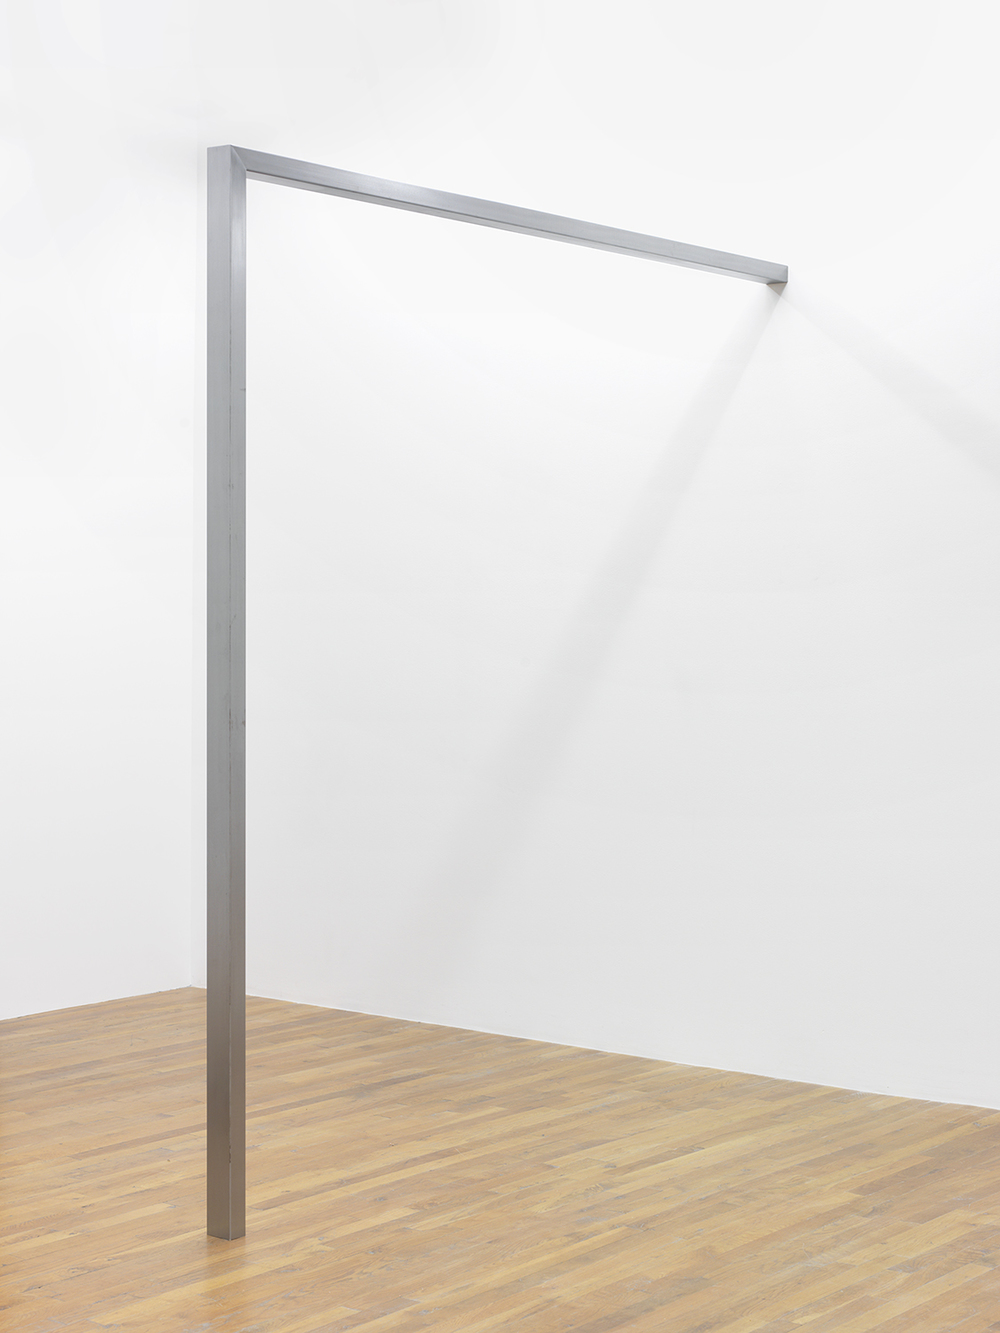 Pole, 2014 Steel 95.5 x 91.5 x 3 inches